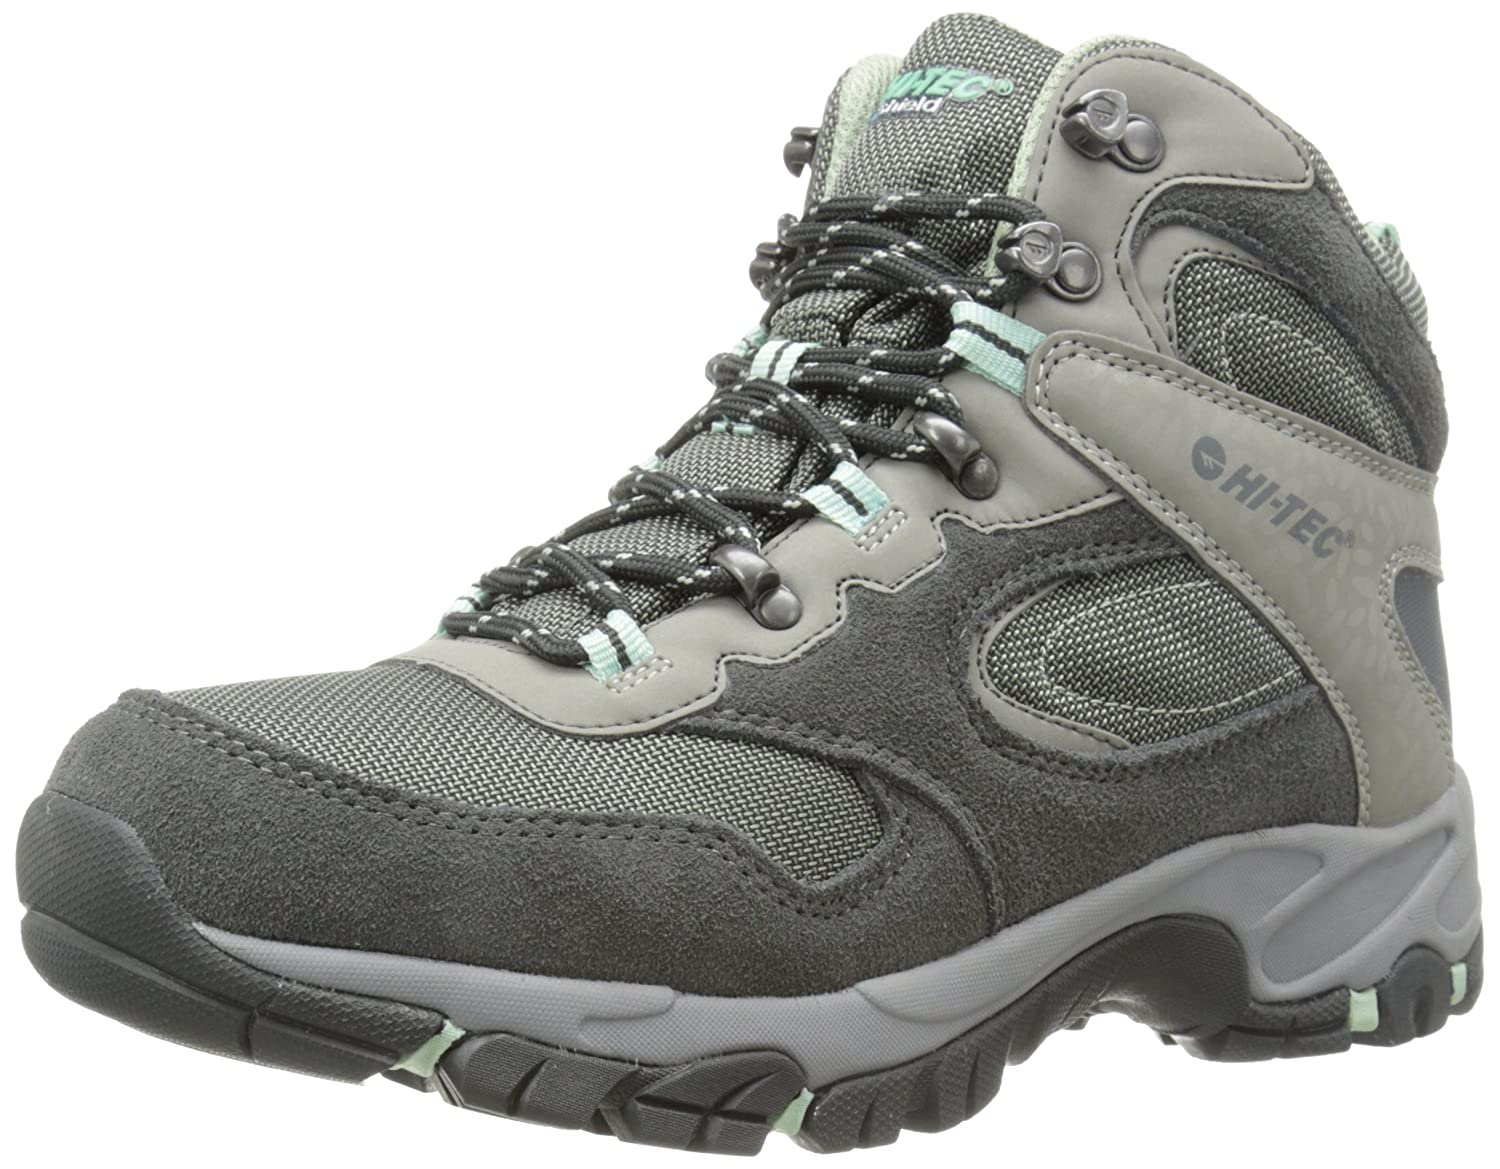 Hi-Tec Women's Altitude Lite I Waterproof Hiking Boot B00LIP6AZ0 8.5 B(M) US|Charcoal/Cool Grey/Lichen